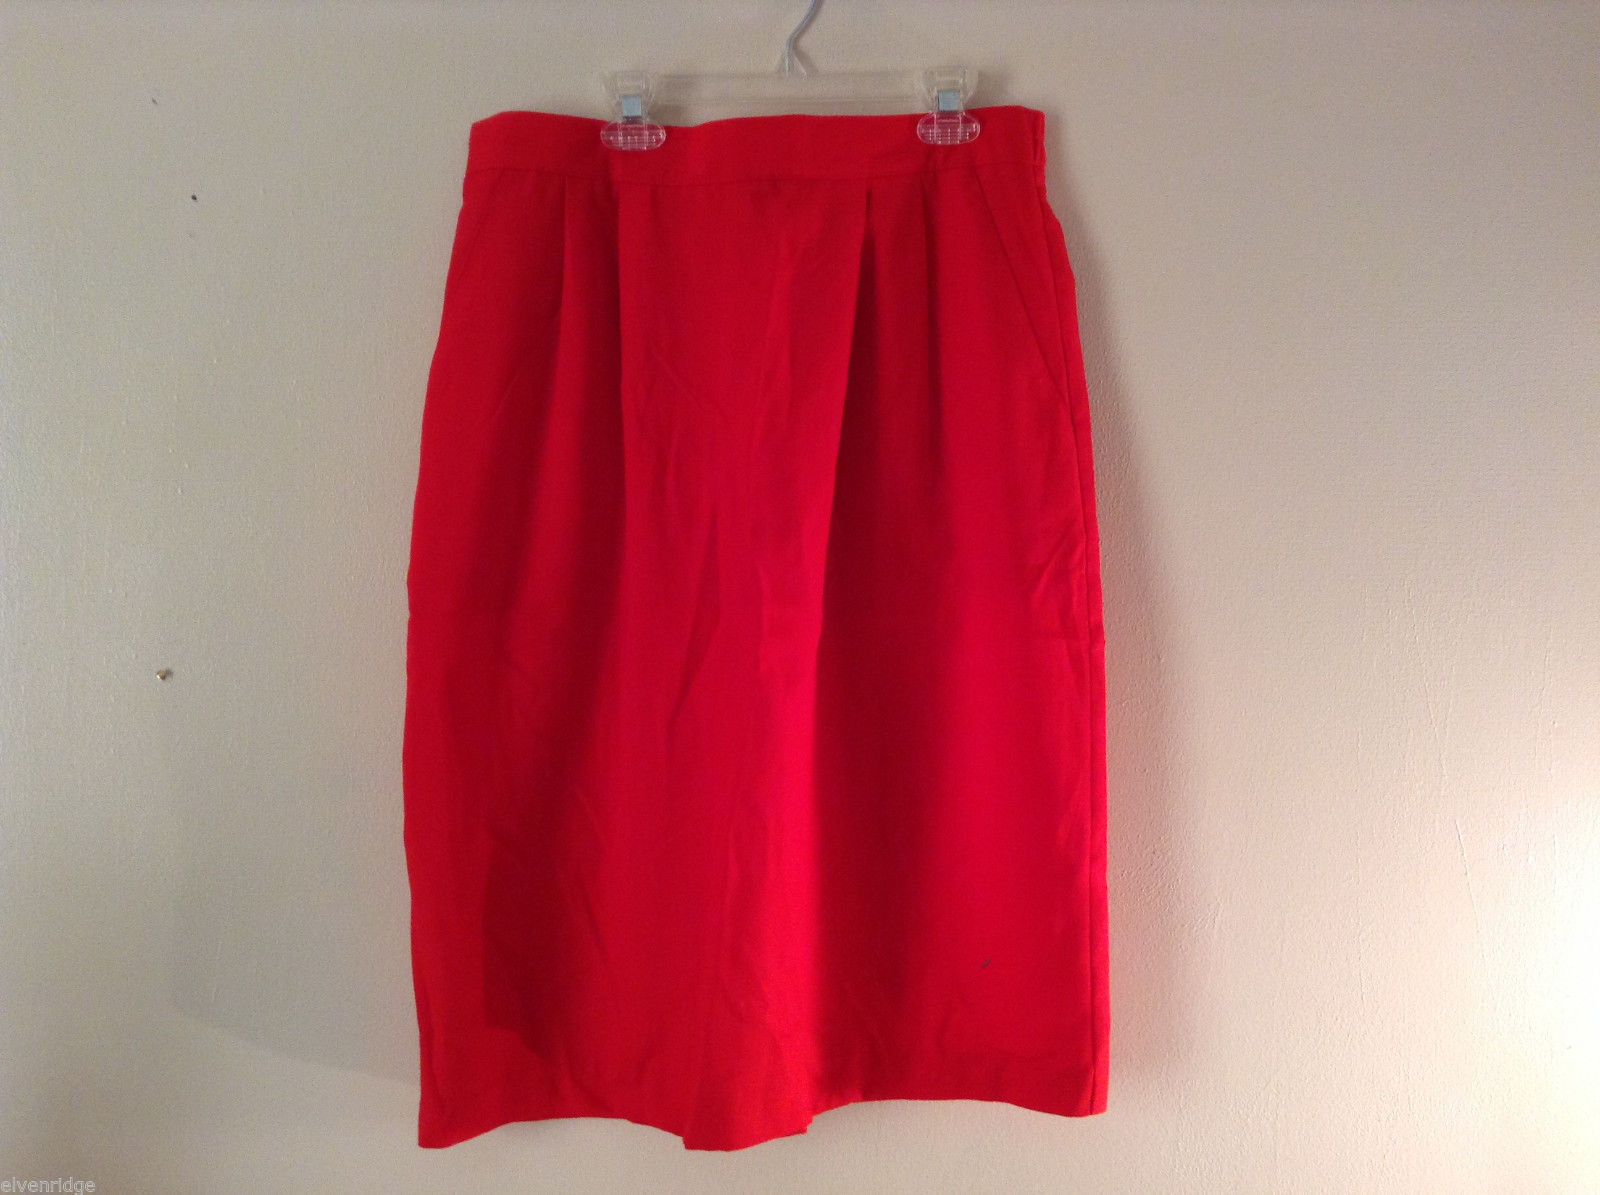 Sag Harbor Women's Size 16 Bright Red Straight Skirt; Soft Pleats, Front Pockets